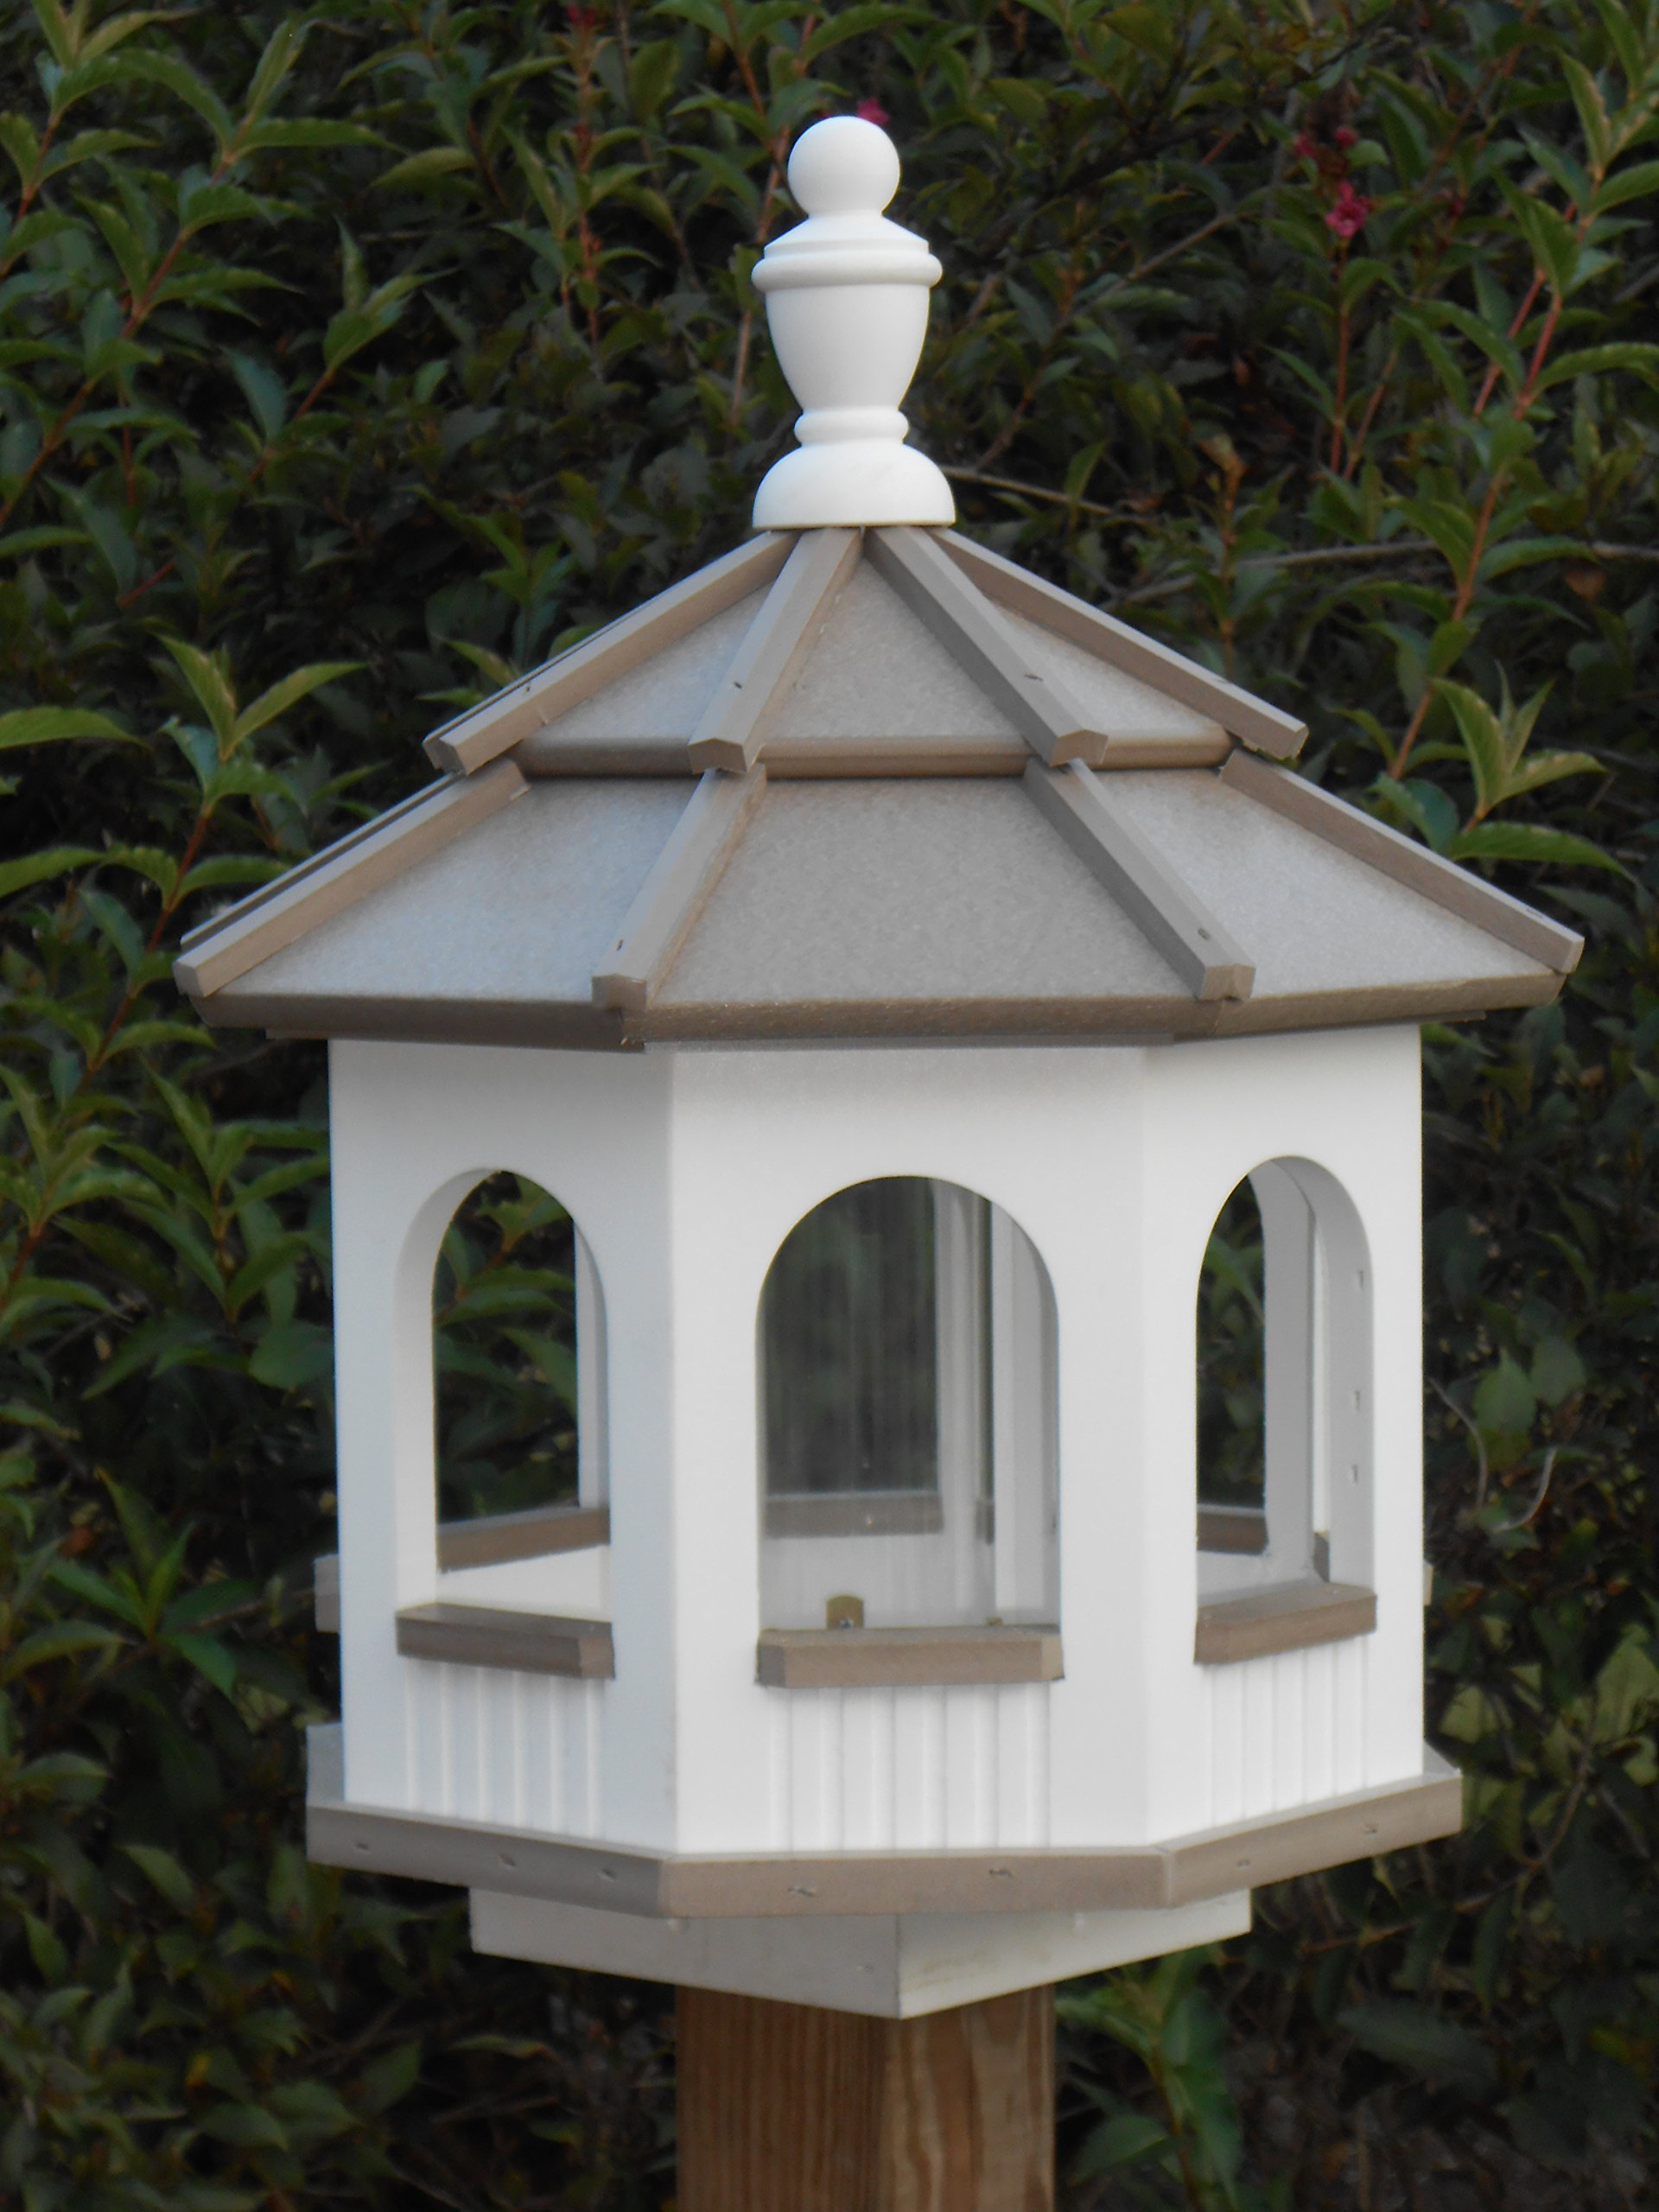 Vinyl Gazebo Bird Feeder Amish Homemade Handmade Handcrafted White & Clay med